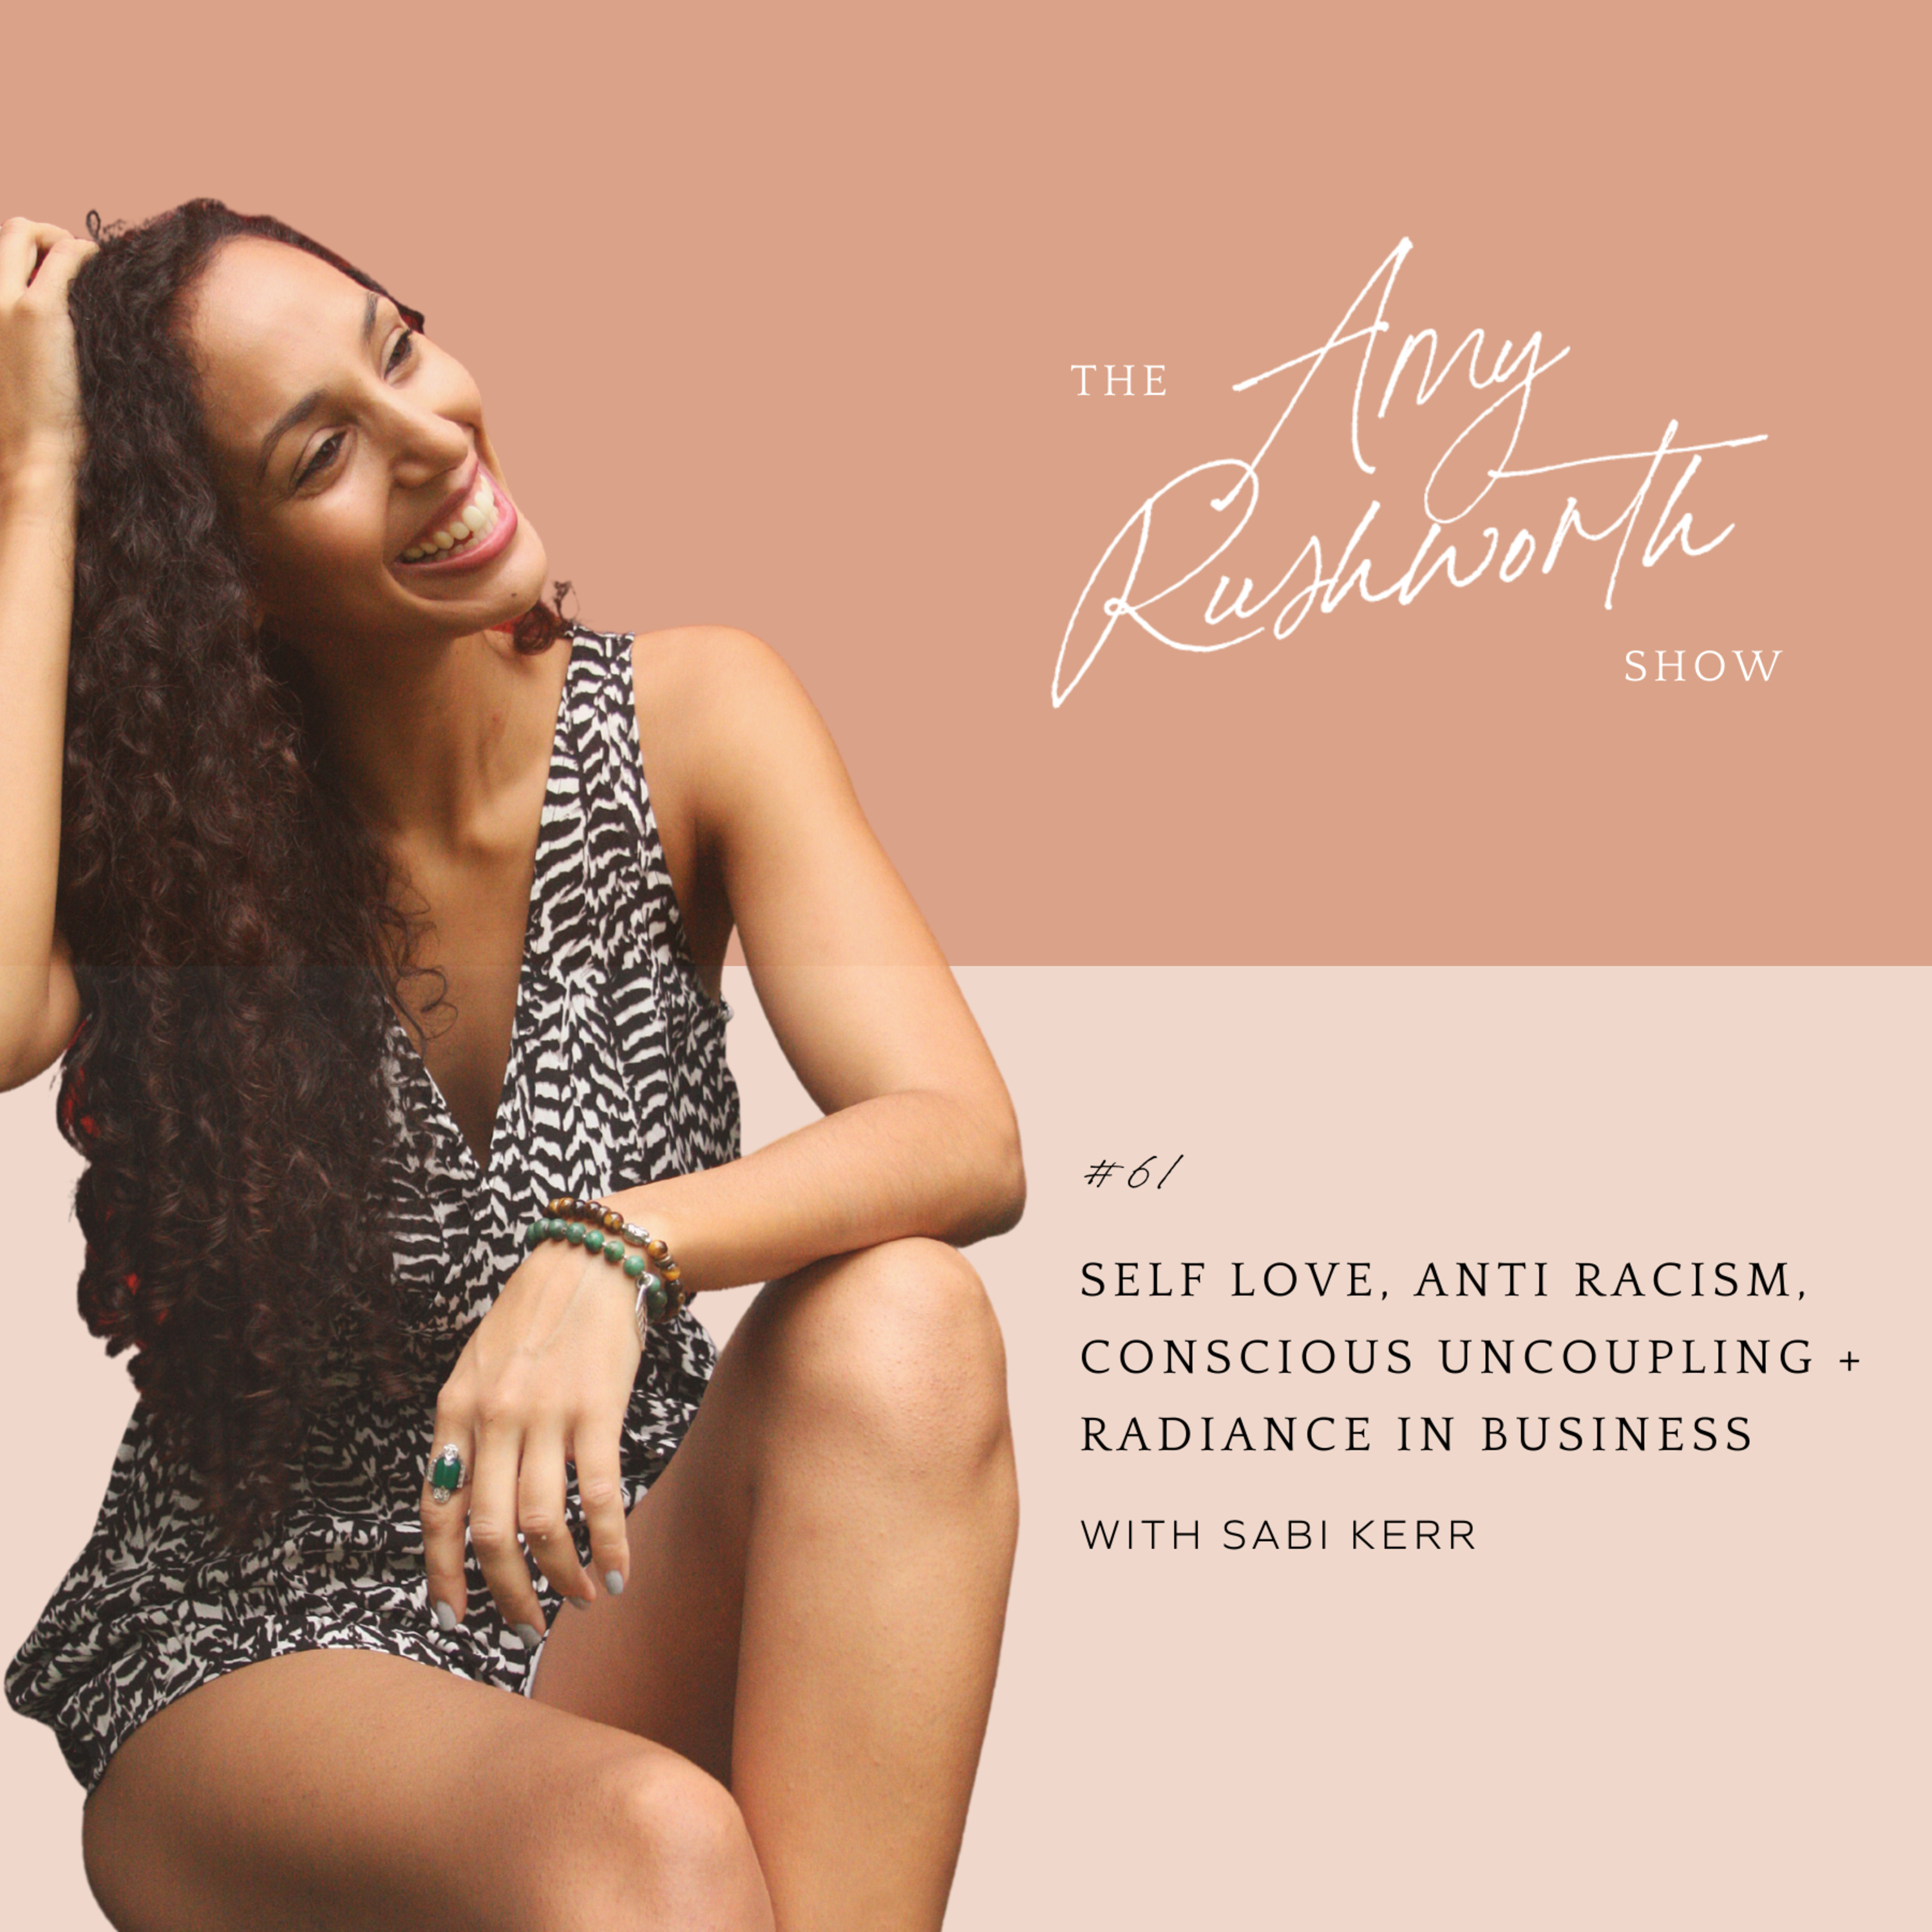 61 - Self Love, Anti Racism, Conscious Uncoupling and Radiance in Business with Sabi Kerr